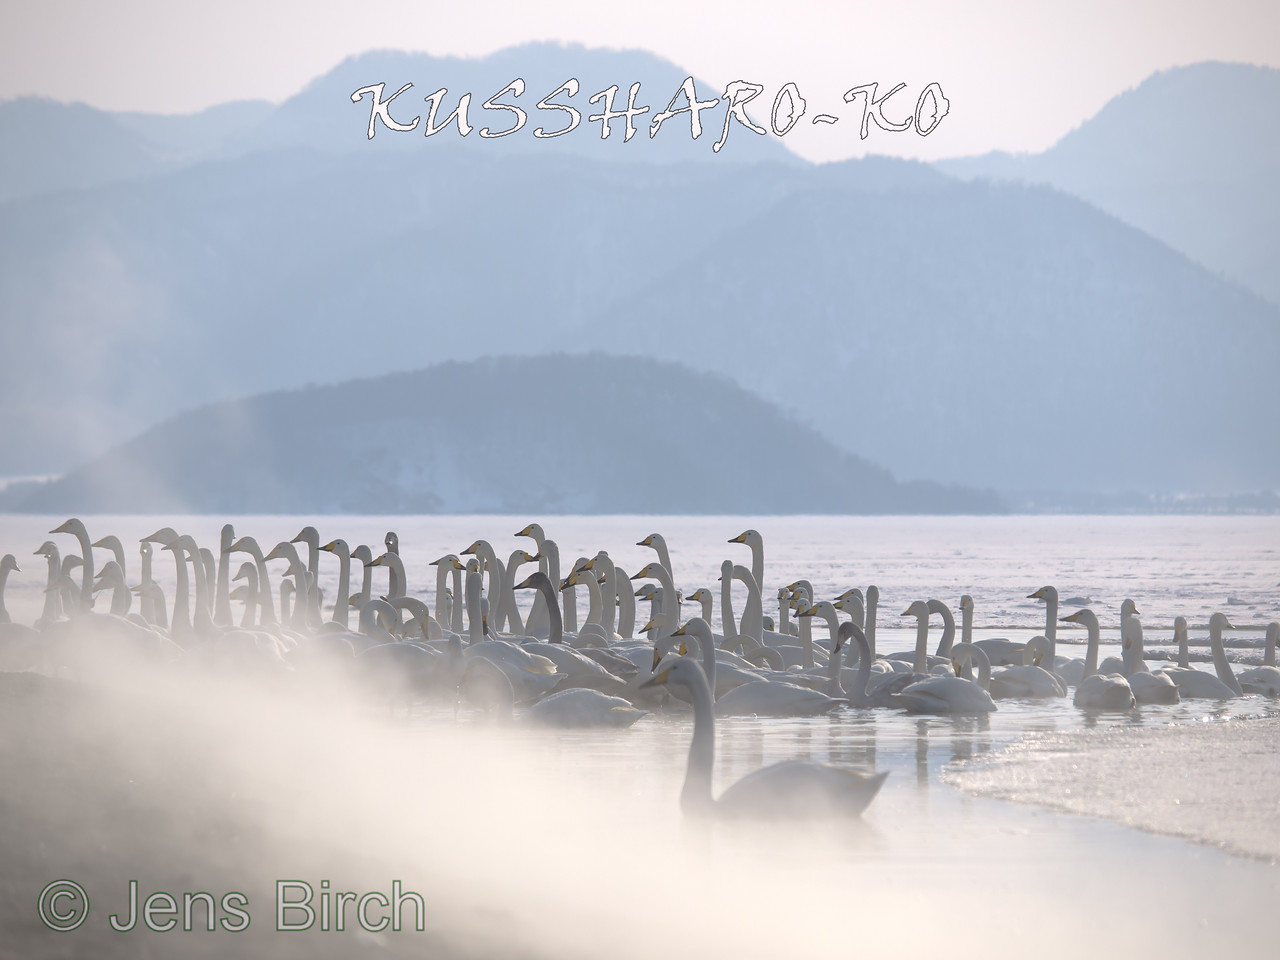 A large number of wooper swans gather in lake Kussharo where hot springs keep a bit of water open.